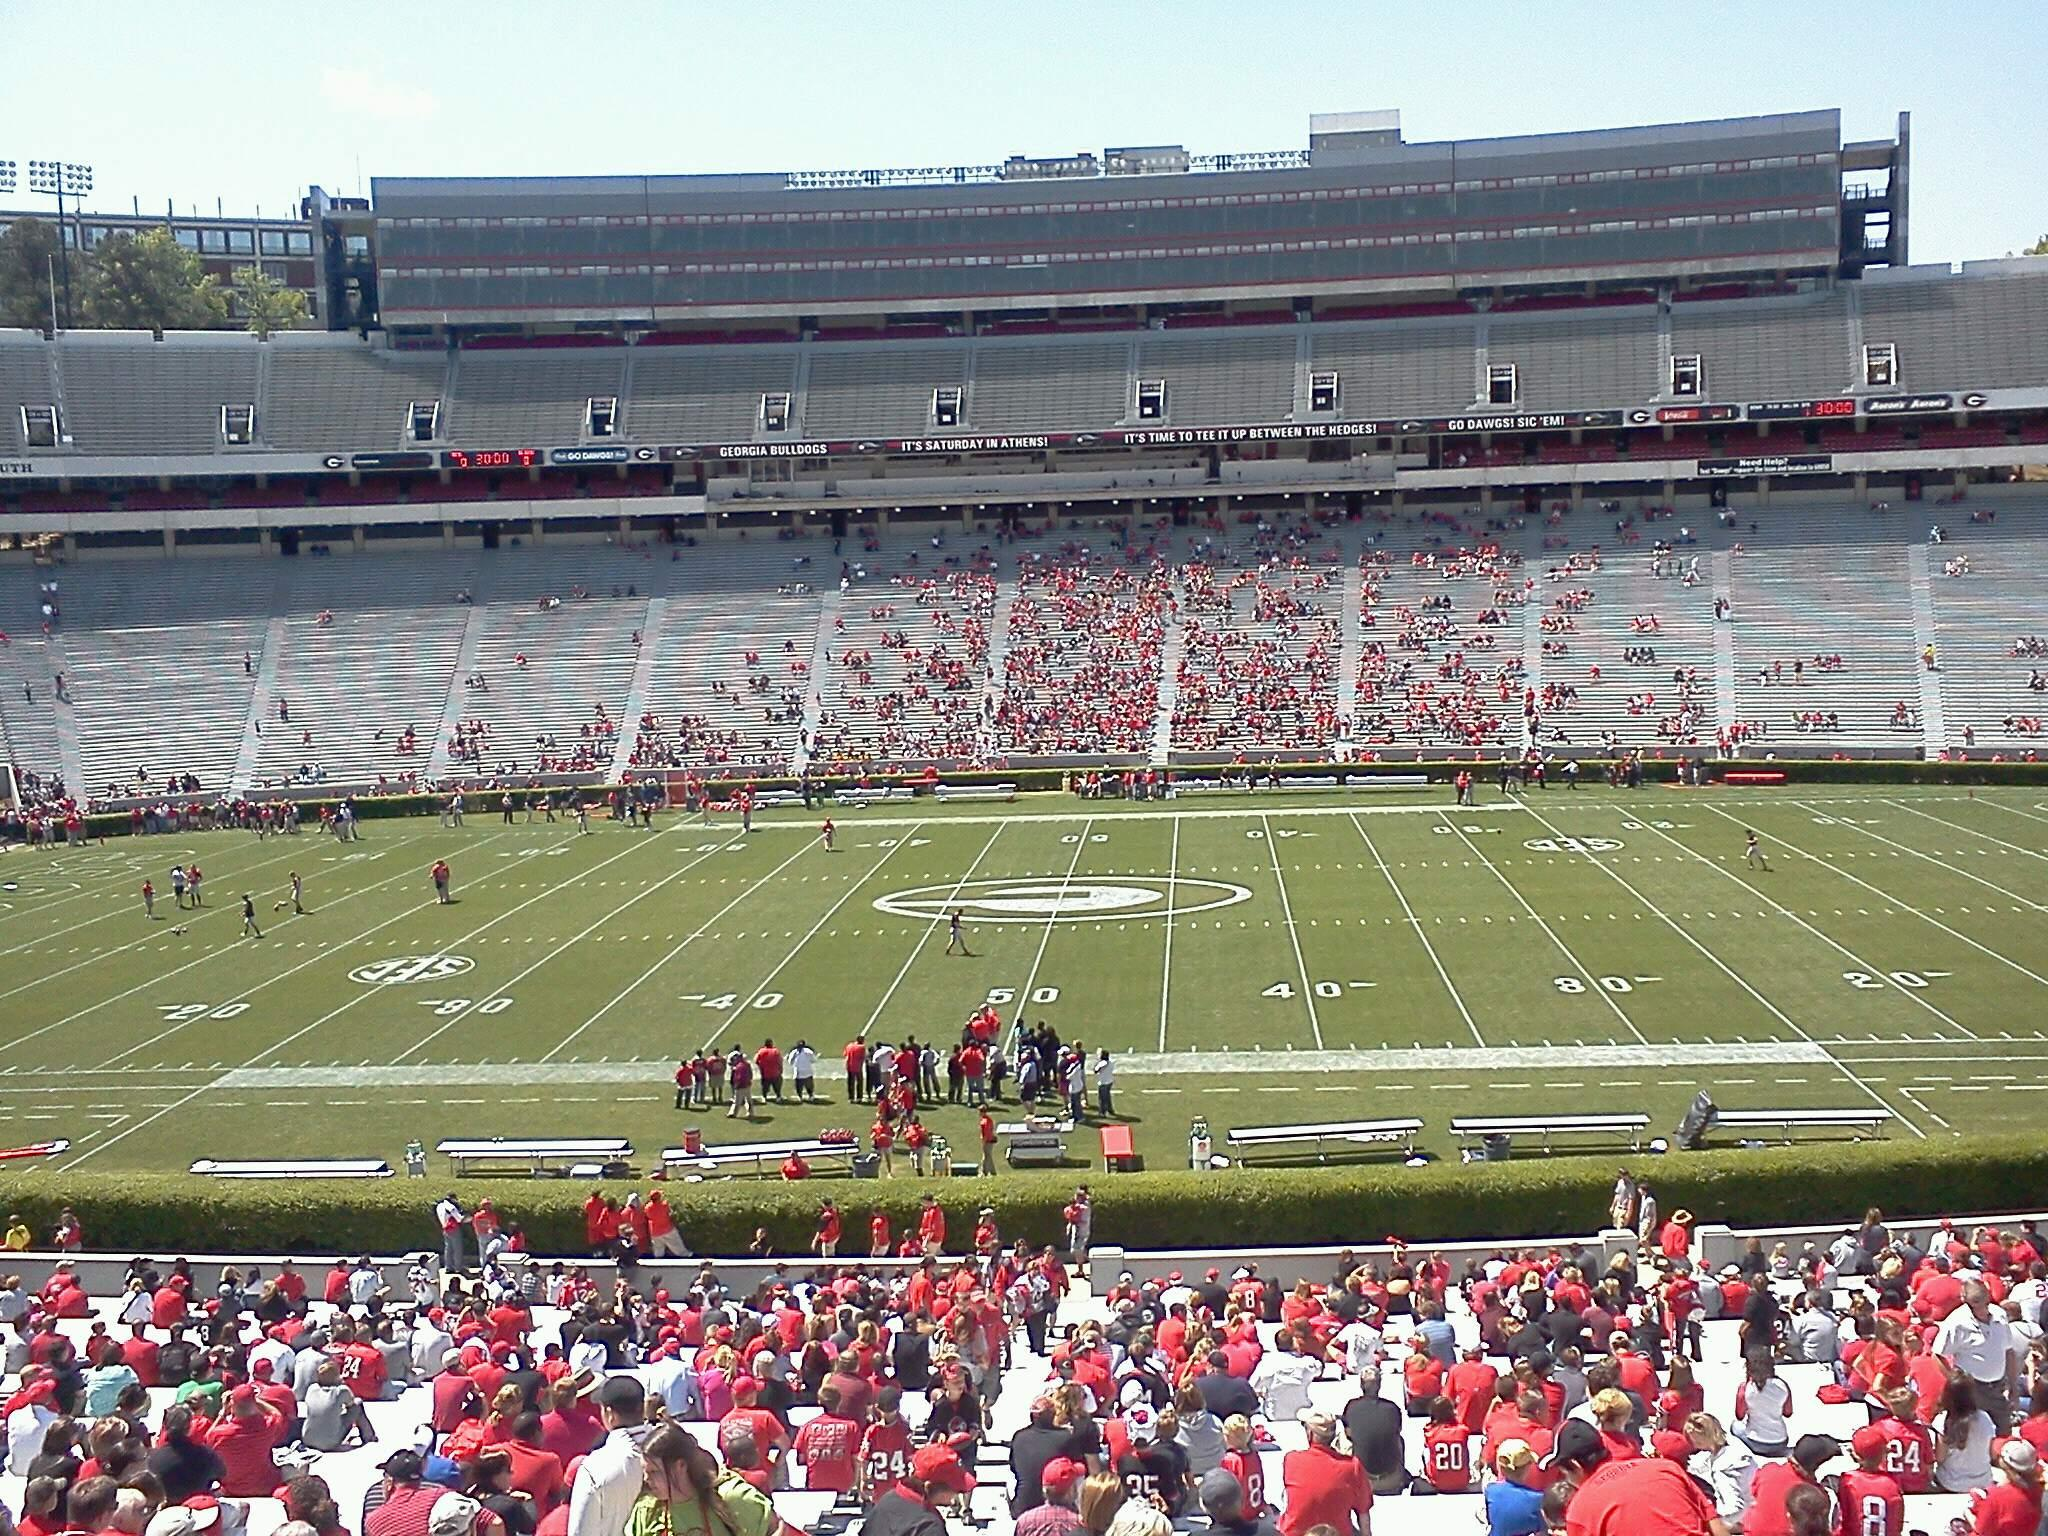 Sanford Stadium Section 106 Row 15